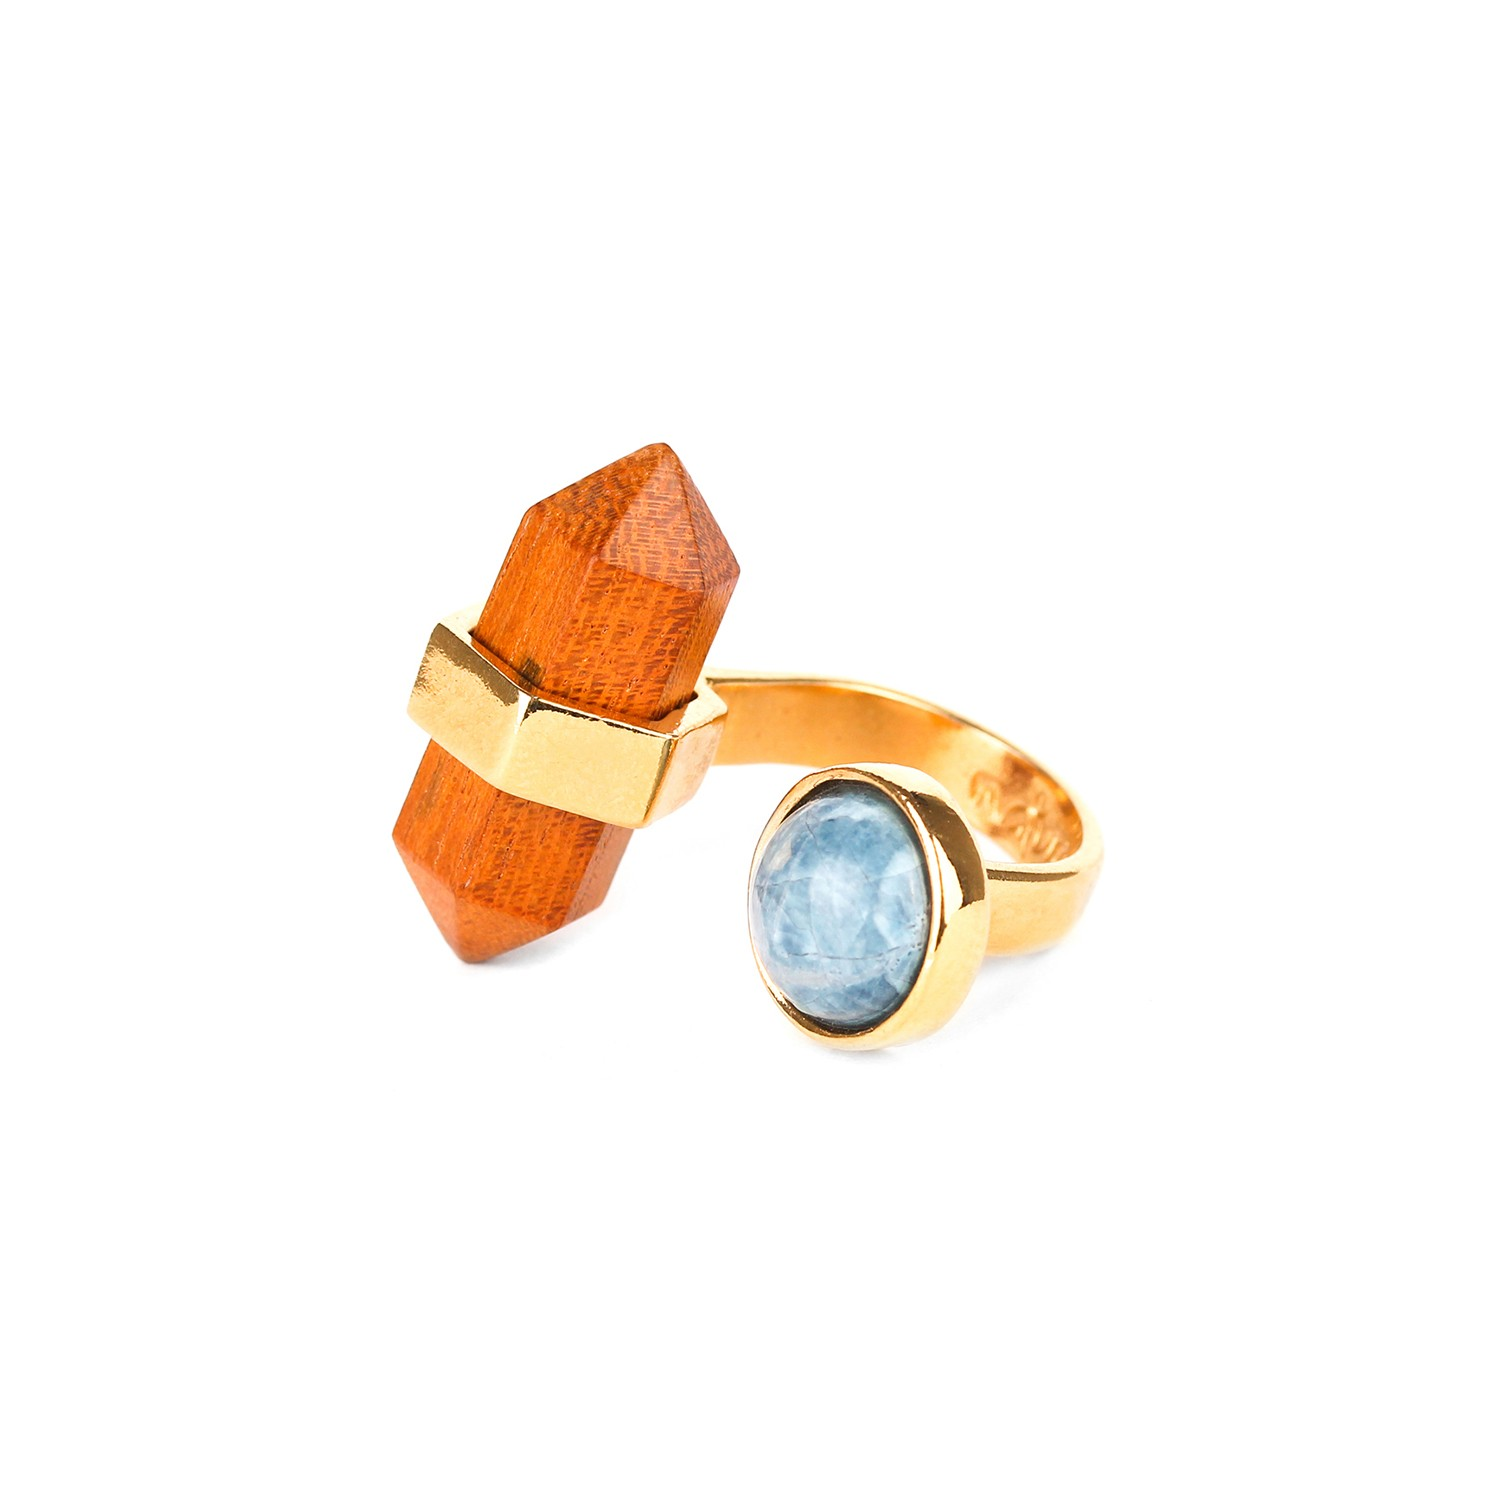 WOOD DIAMONDS bague duo